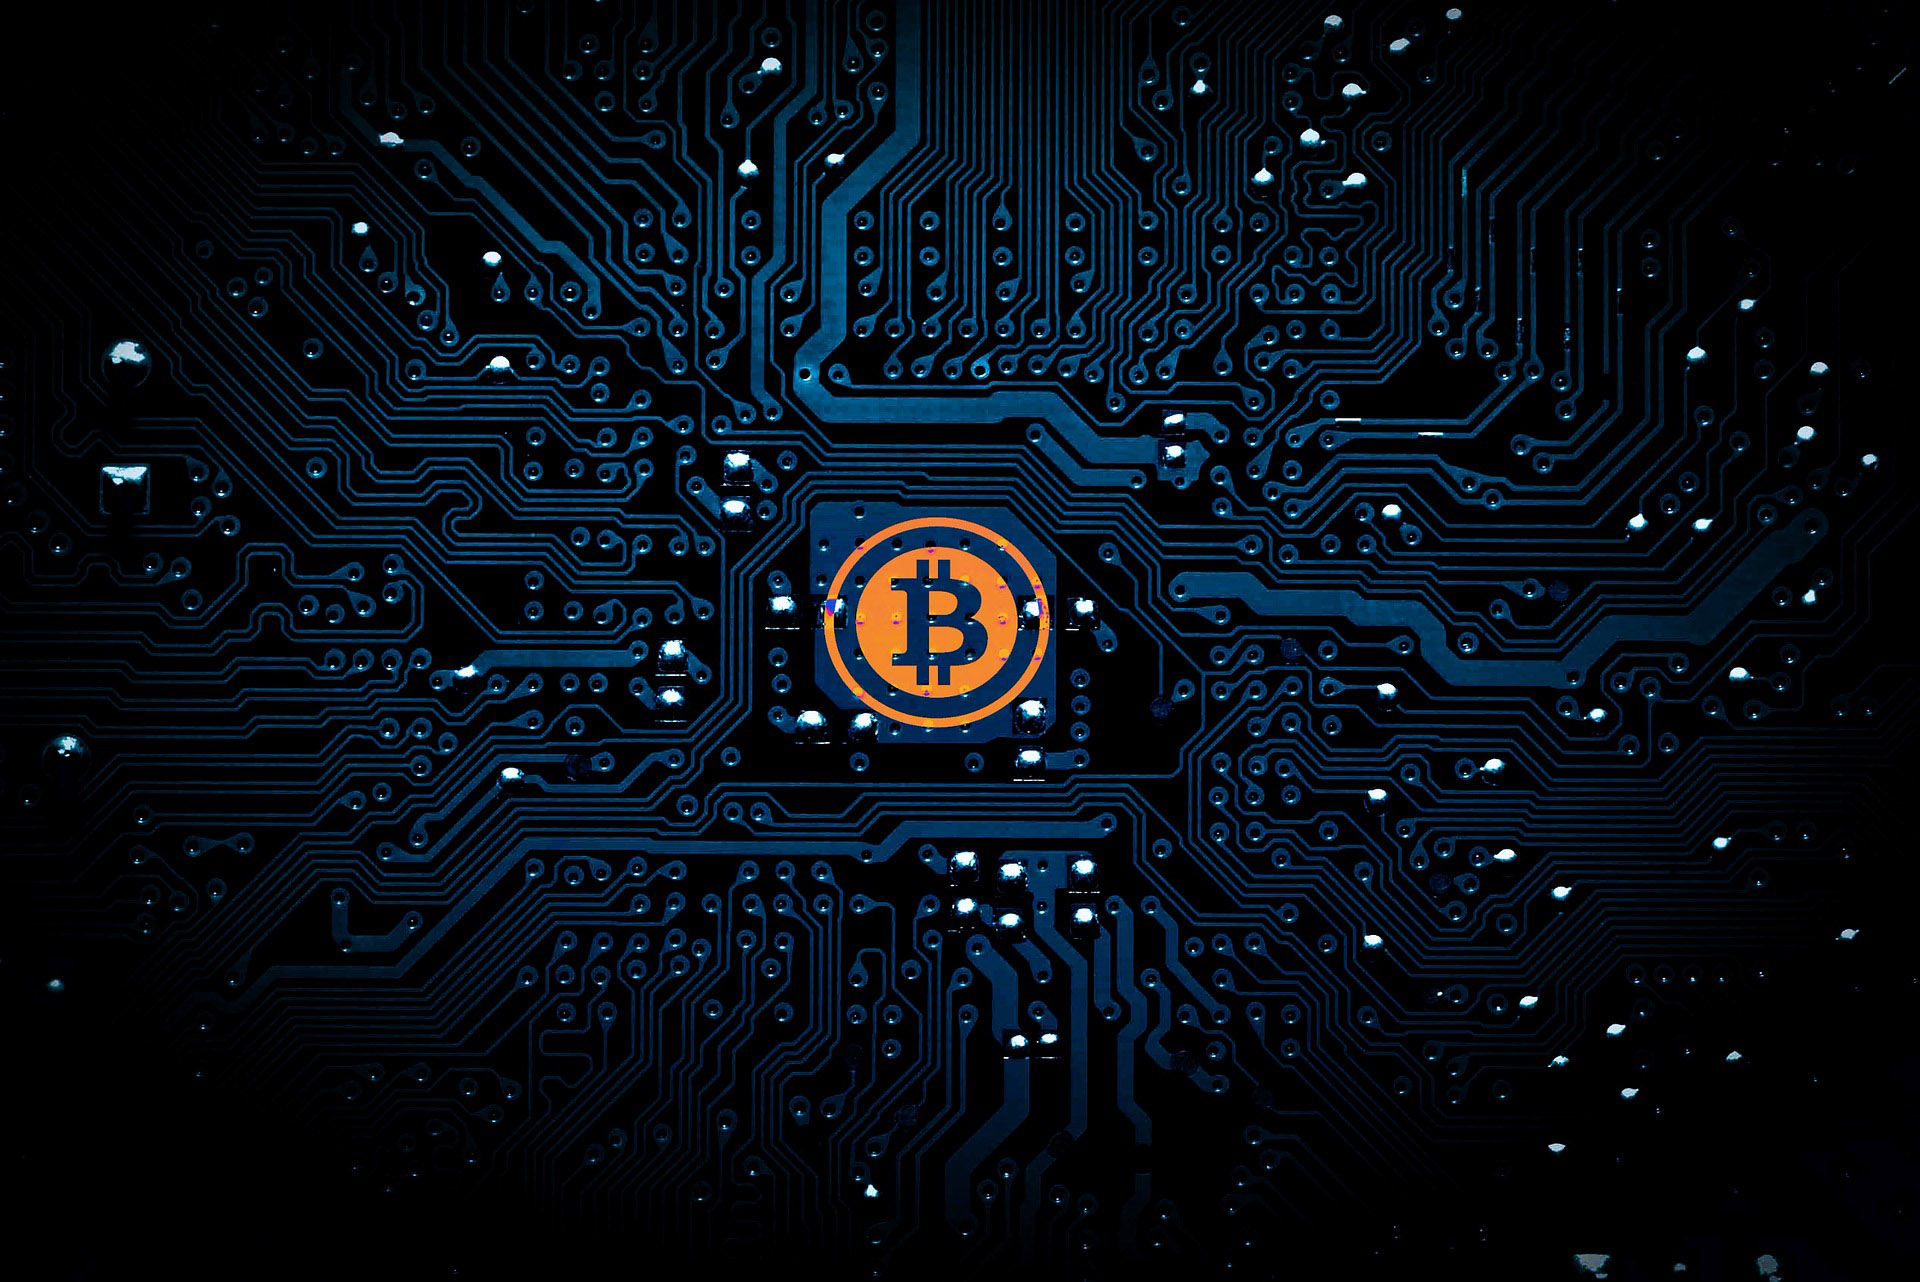 bitcoin-background-1